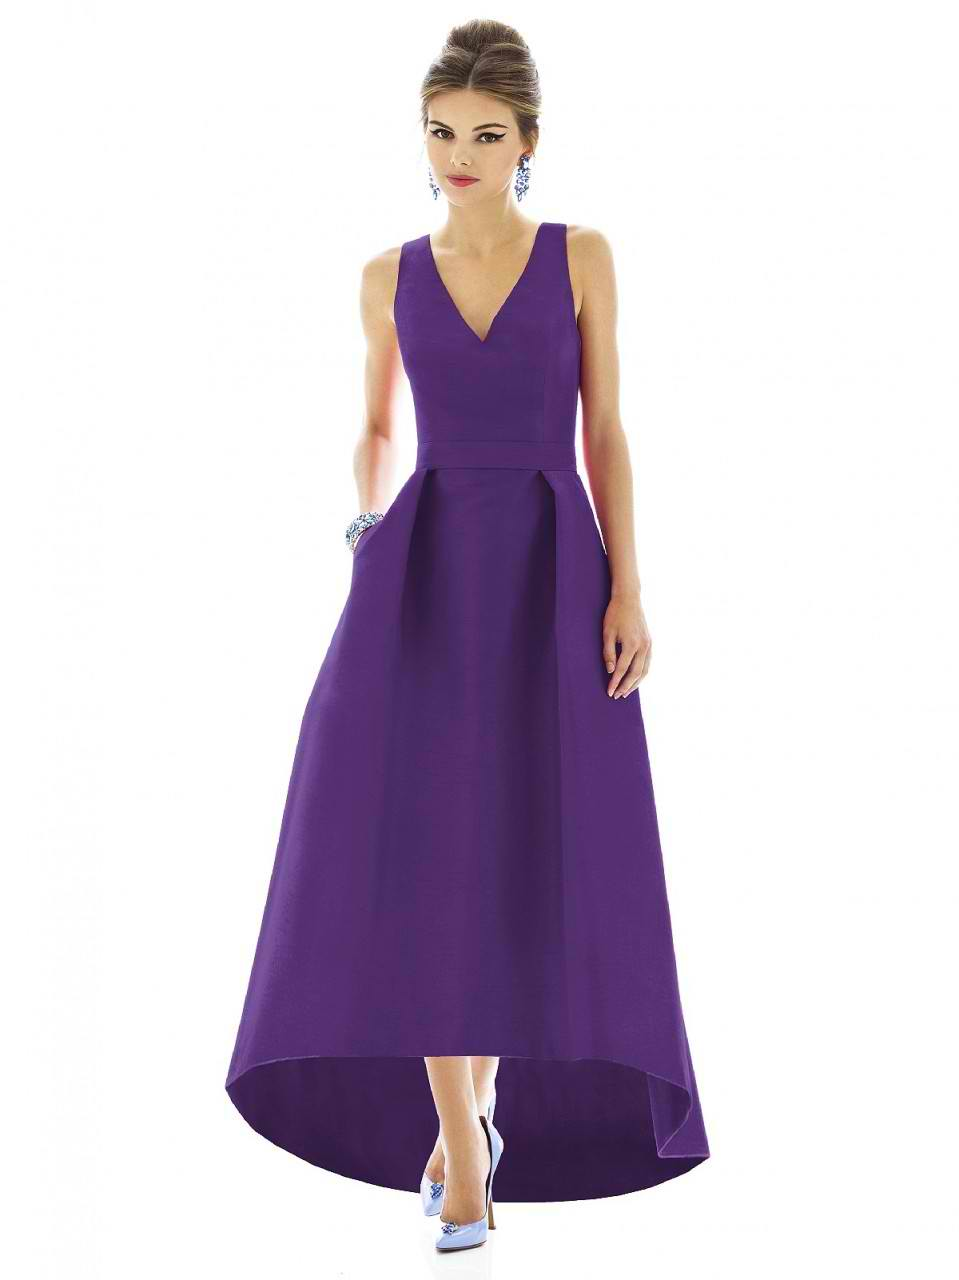 Alfred Sung Bridesmaids Dress D589 by Dessy Bridesmaids Dresses